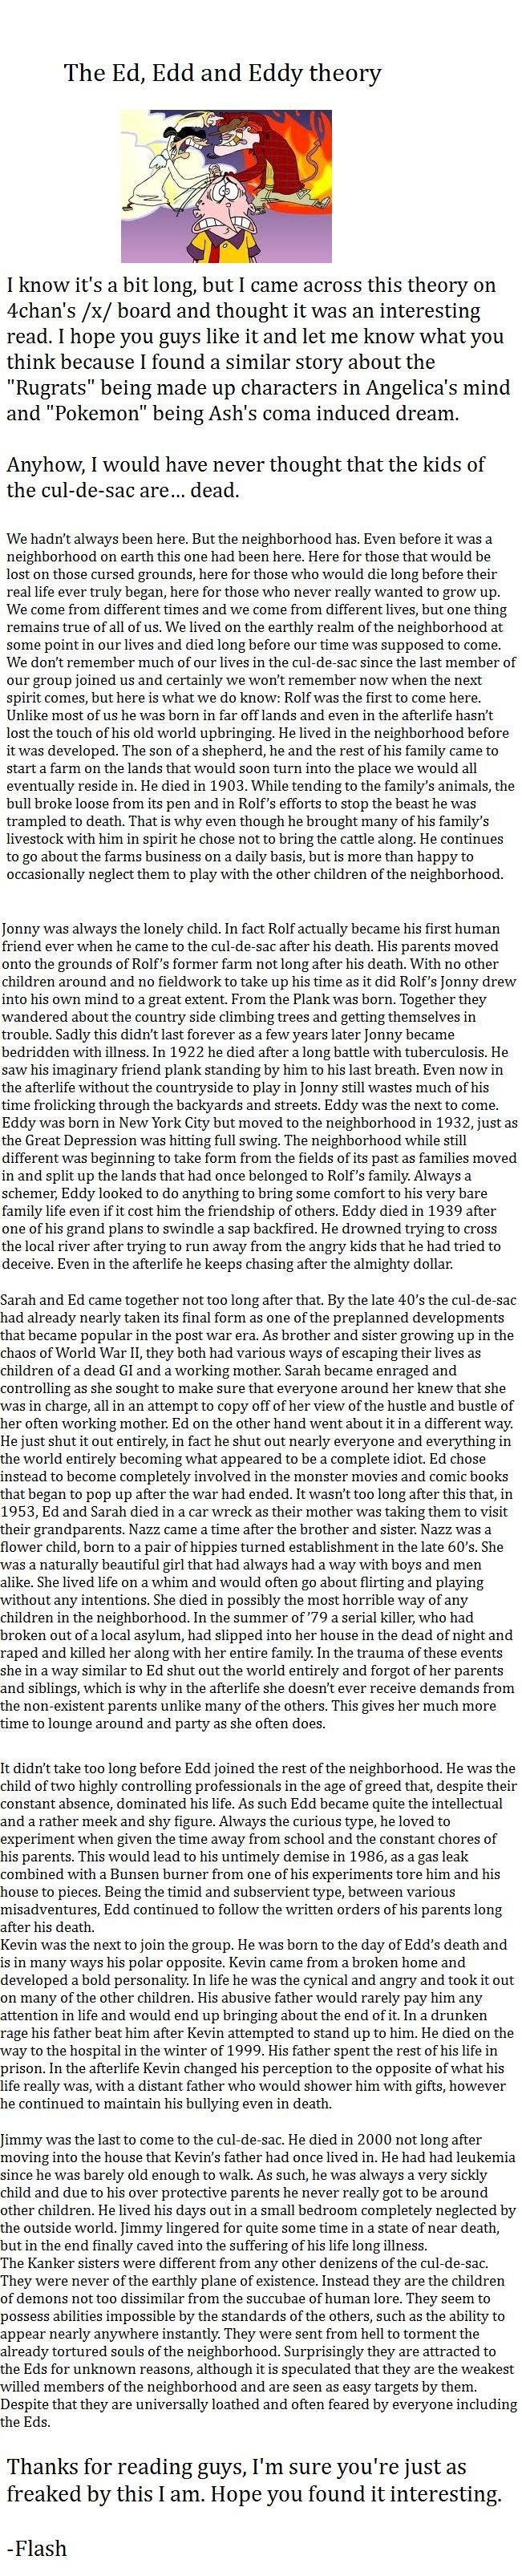 Ed, Edd, and Eddy Theory. Who has the time and inclination to come up with such a detailed backstory?